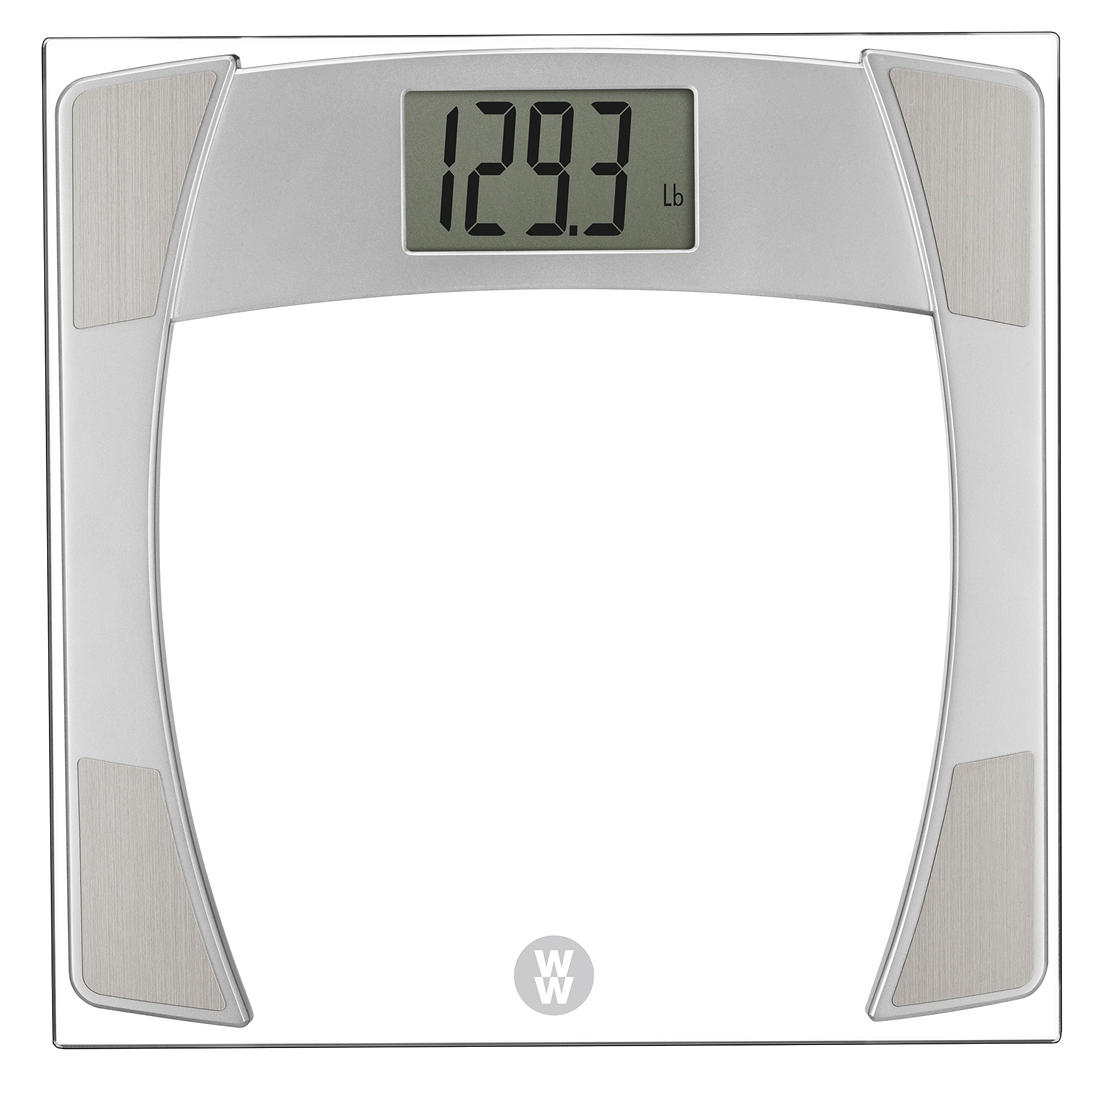 Ww Scales By Conair Digital Weight, Bathroom Weight Scales